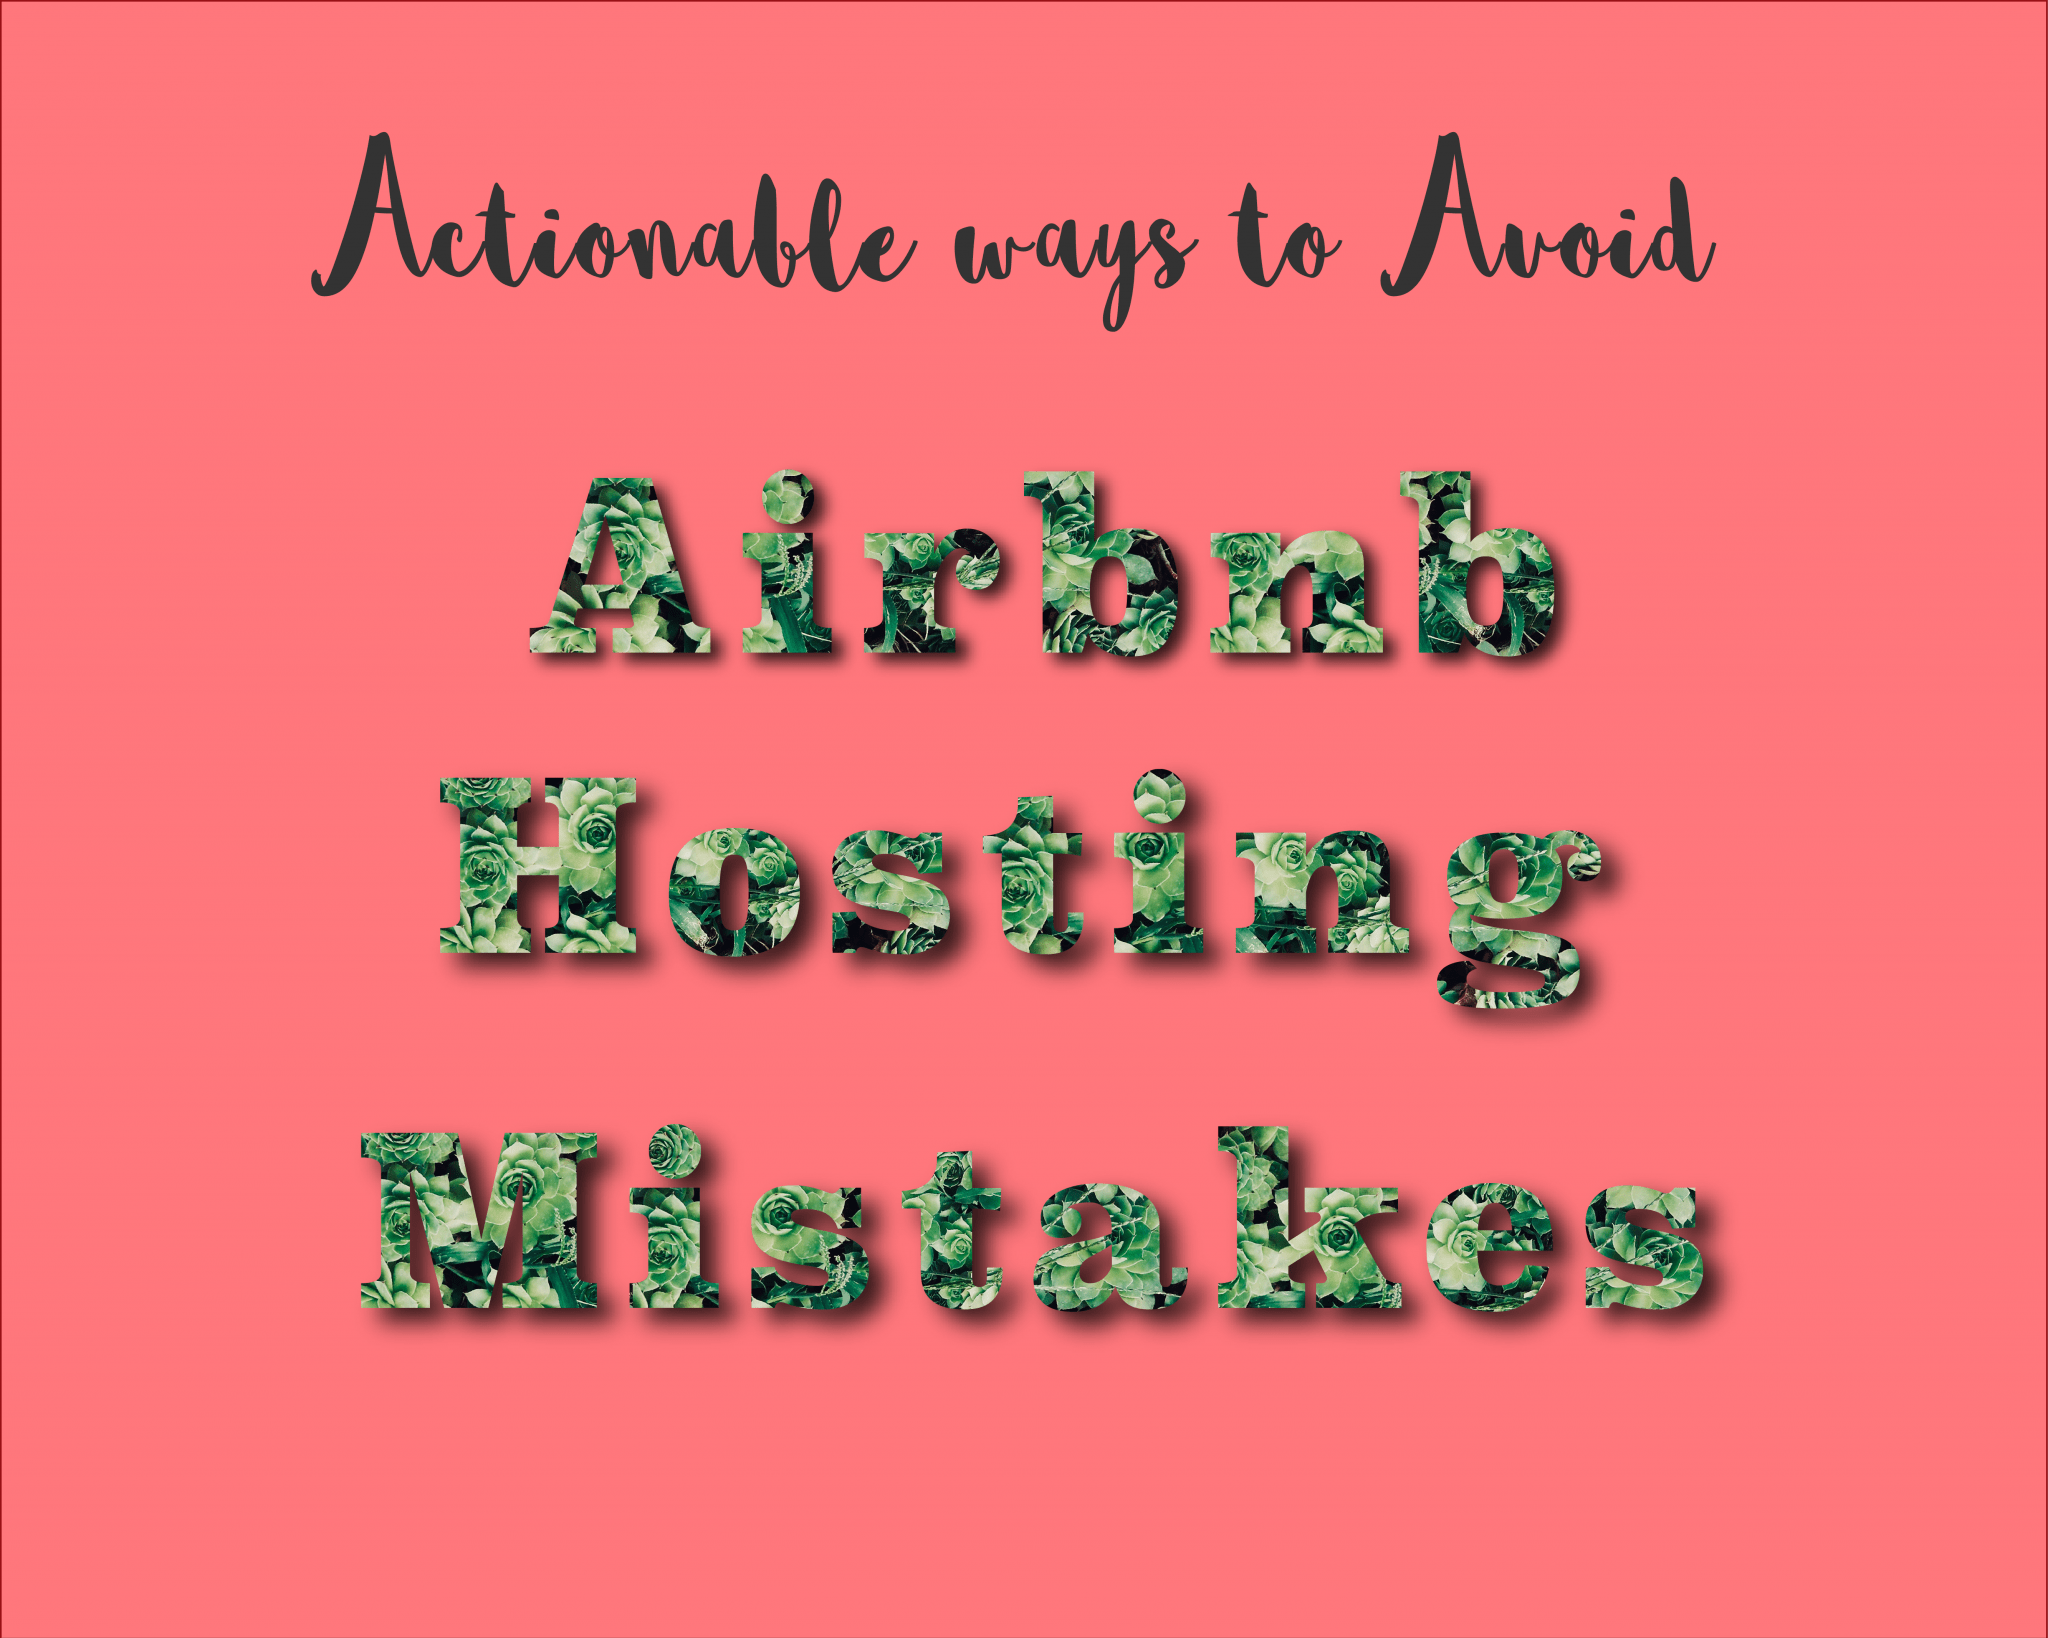 Actionable ways to avoid Airbnb hosting mistakes Graphic 1